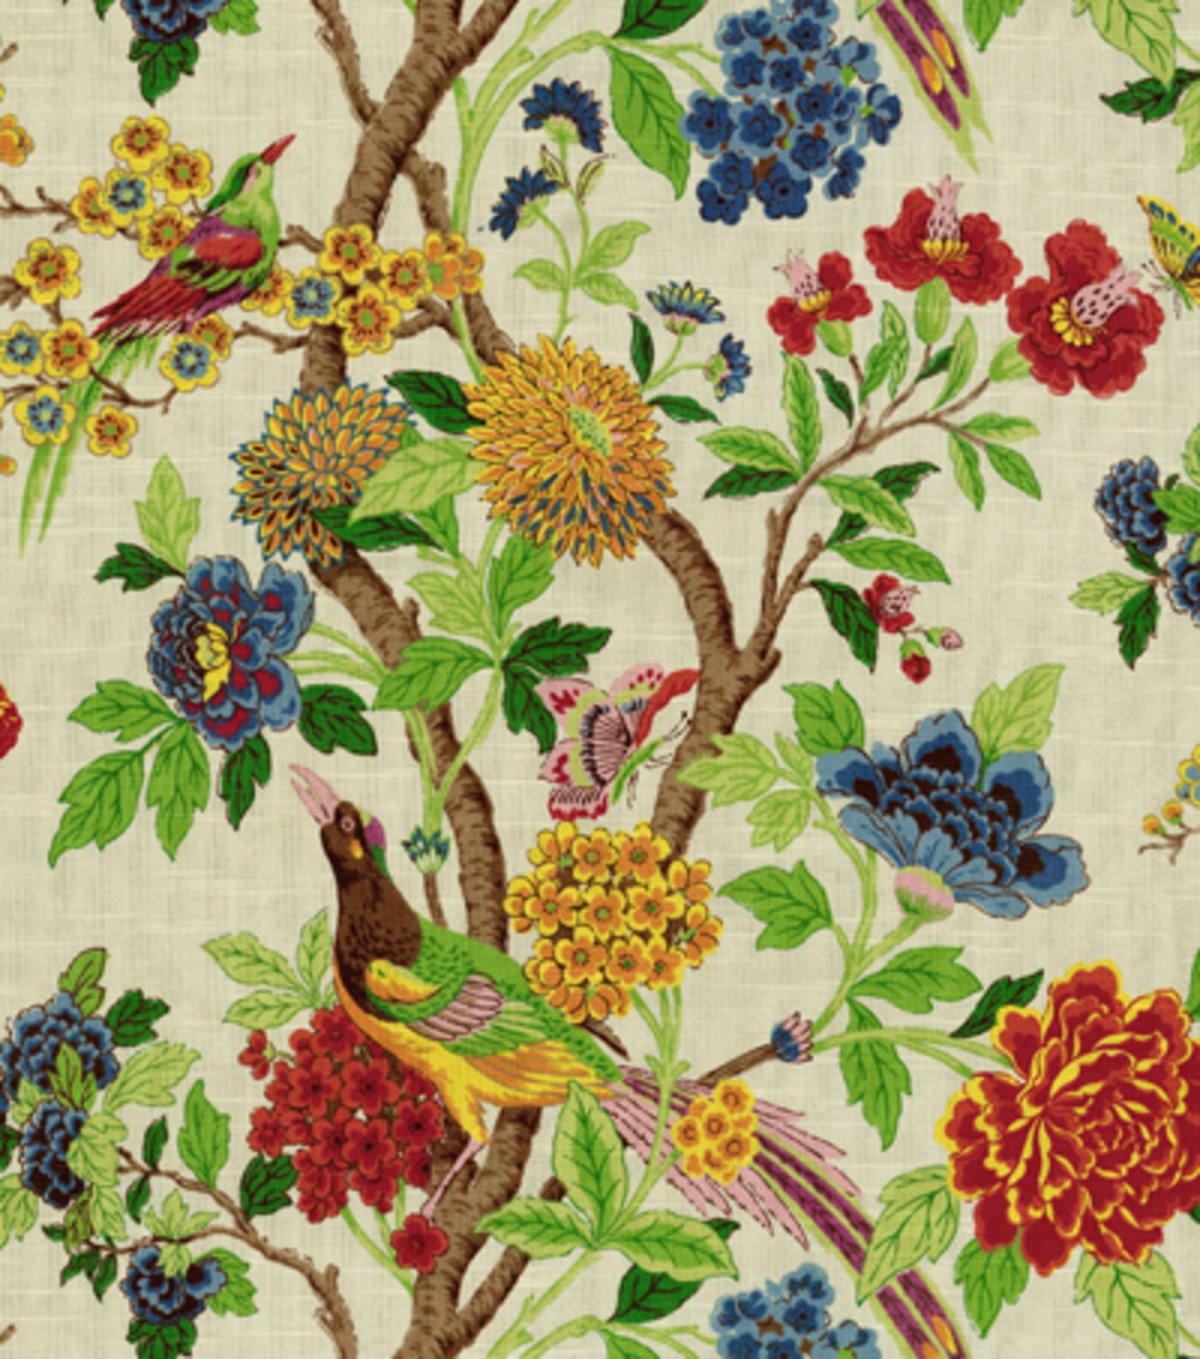 fabric joann decor fabrics summer floral upholstery prints studio richloom wilma yard drapery flowers cotton material patterns decorating pattern curtains